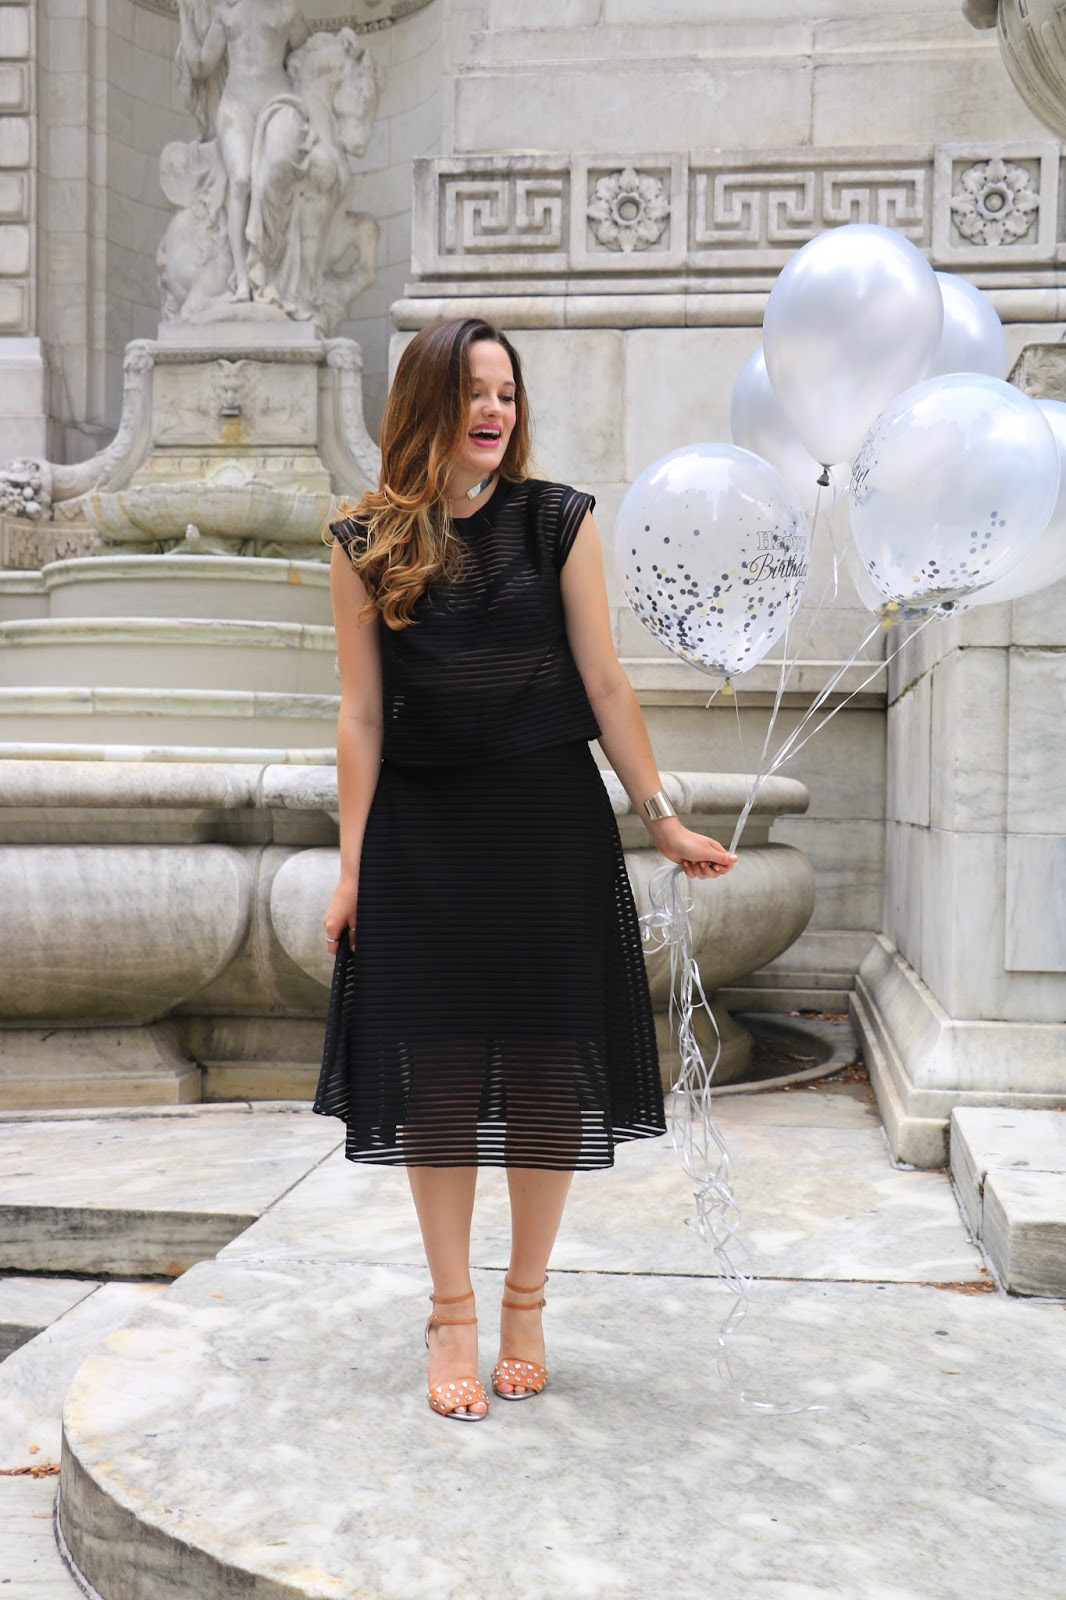 NYC fashion blogger Kathleen Harper of Kat's Fashion Fix showing party outfit ideas